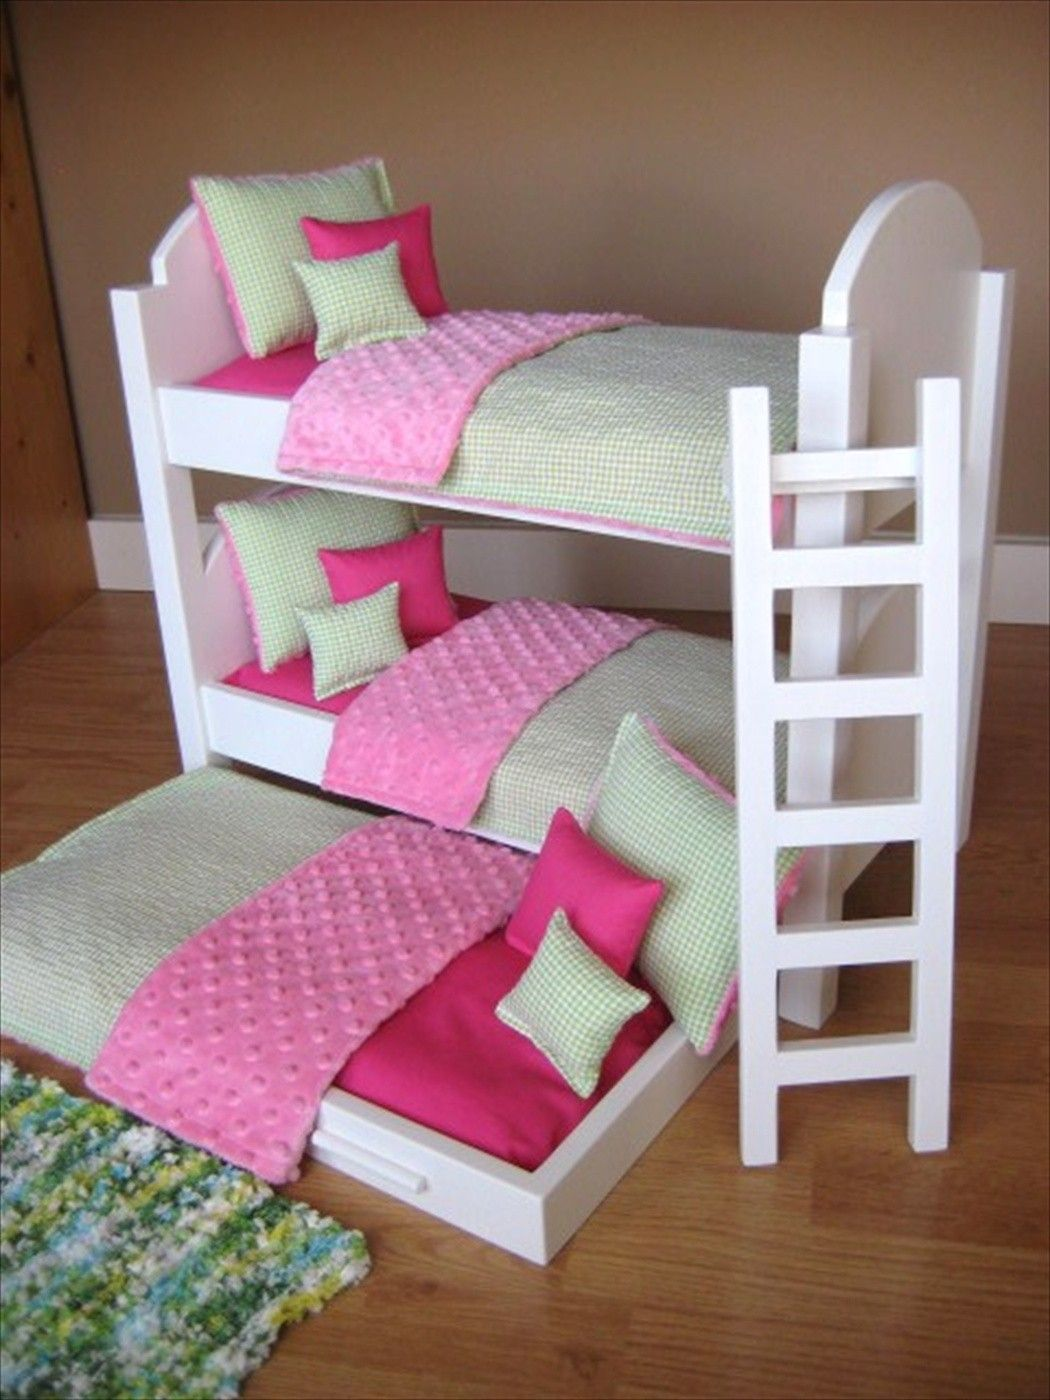 Cream Colored Bunk Beds Deluxe Small Bunk Bed Design For Teenage Girl With Cream